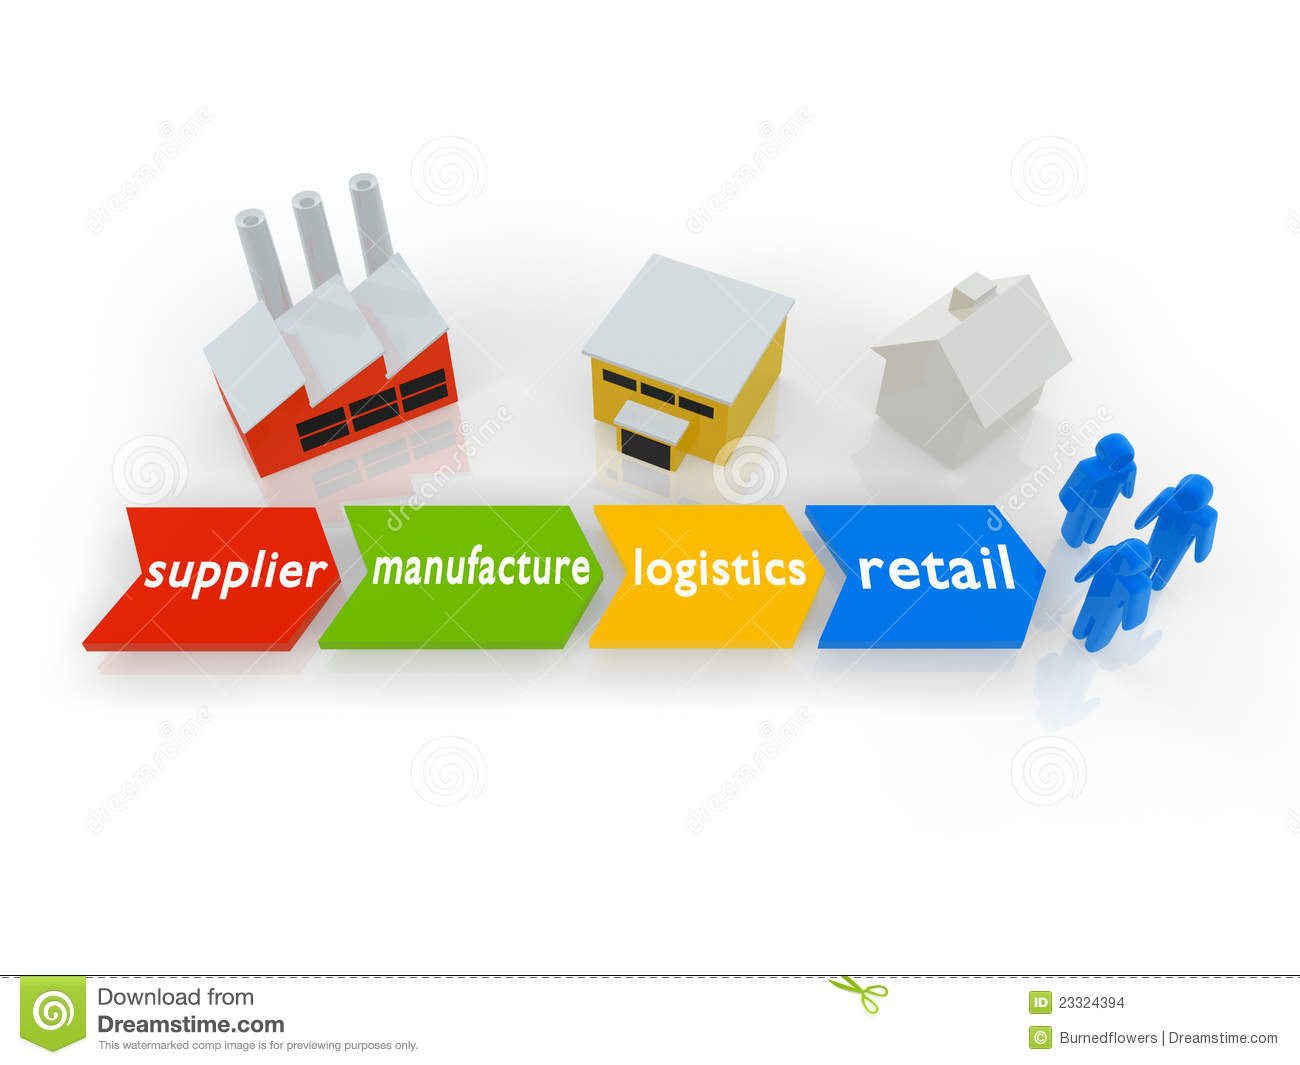 supply chain management in operation Supply chain management vs operations management supply chain management and operations management are two terms that are often confused by managers in big organizations.